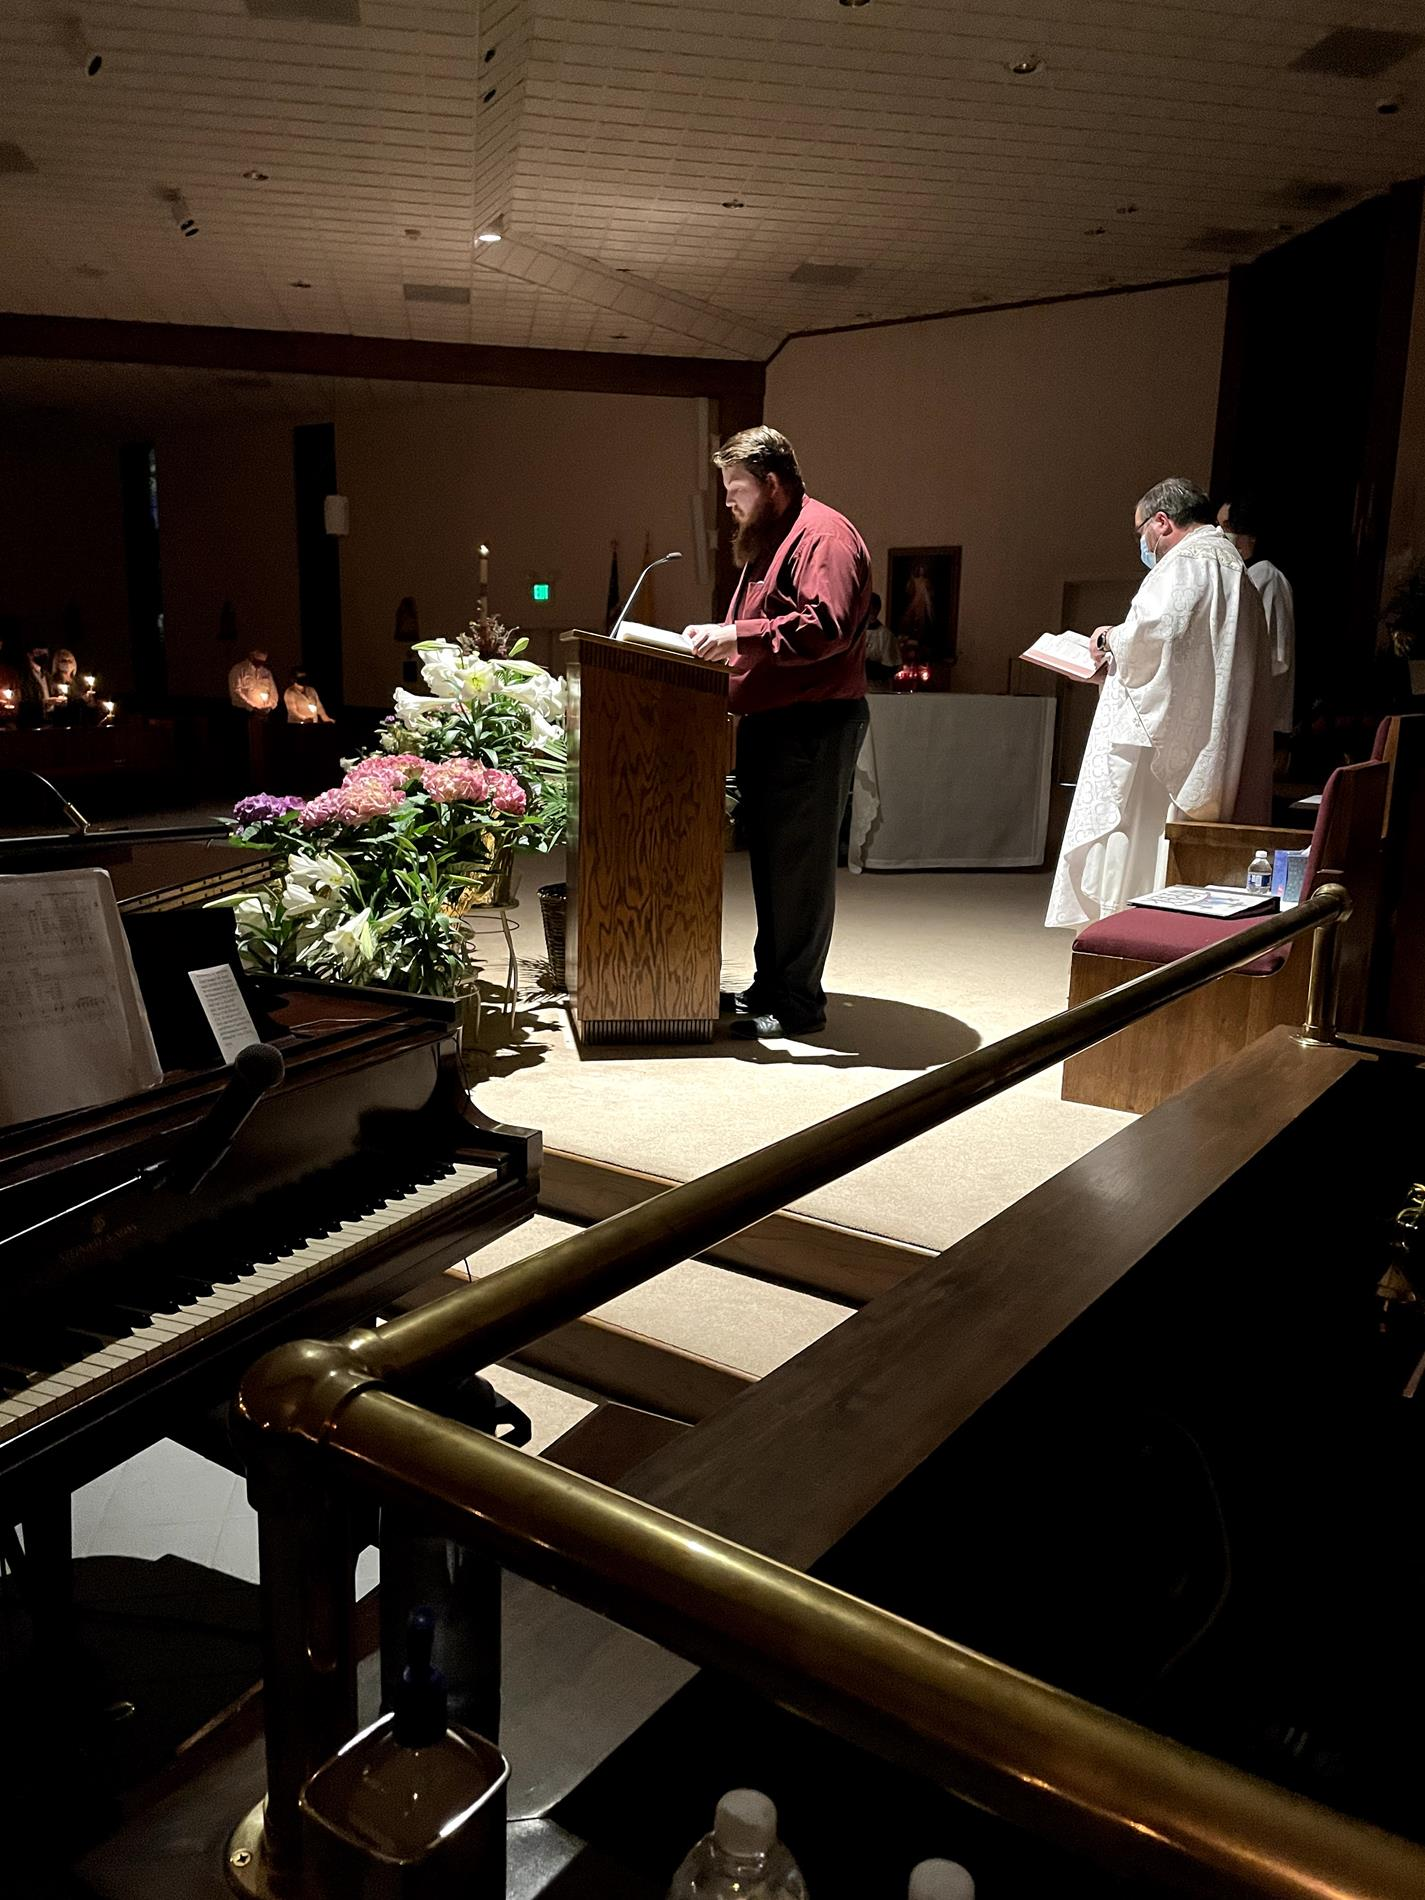 McCahill singing the Easter Proclamation (Exsultet)